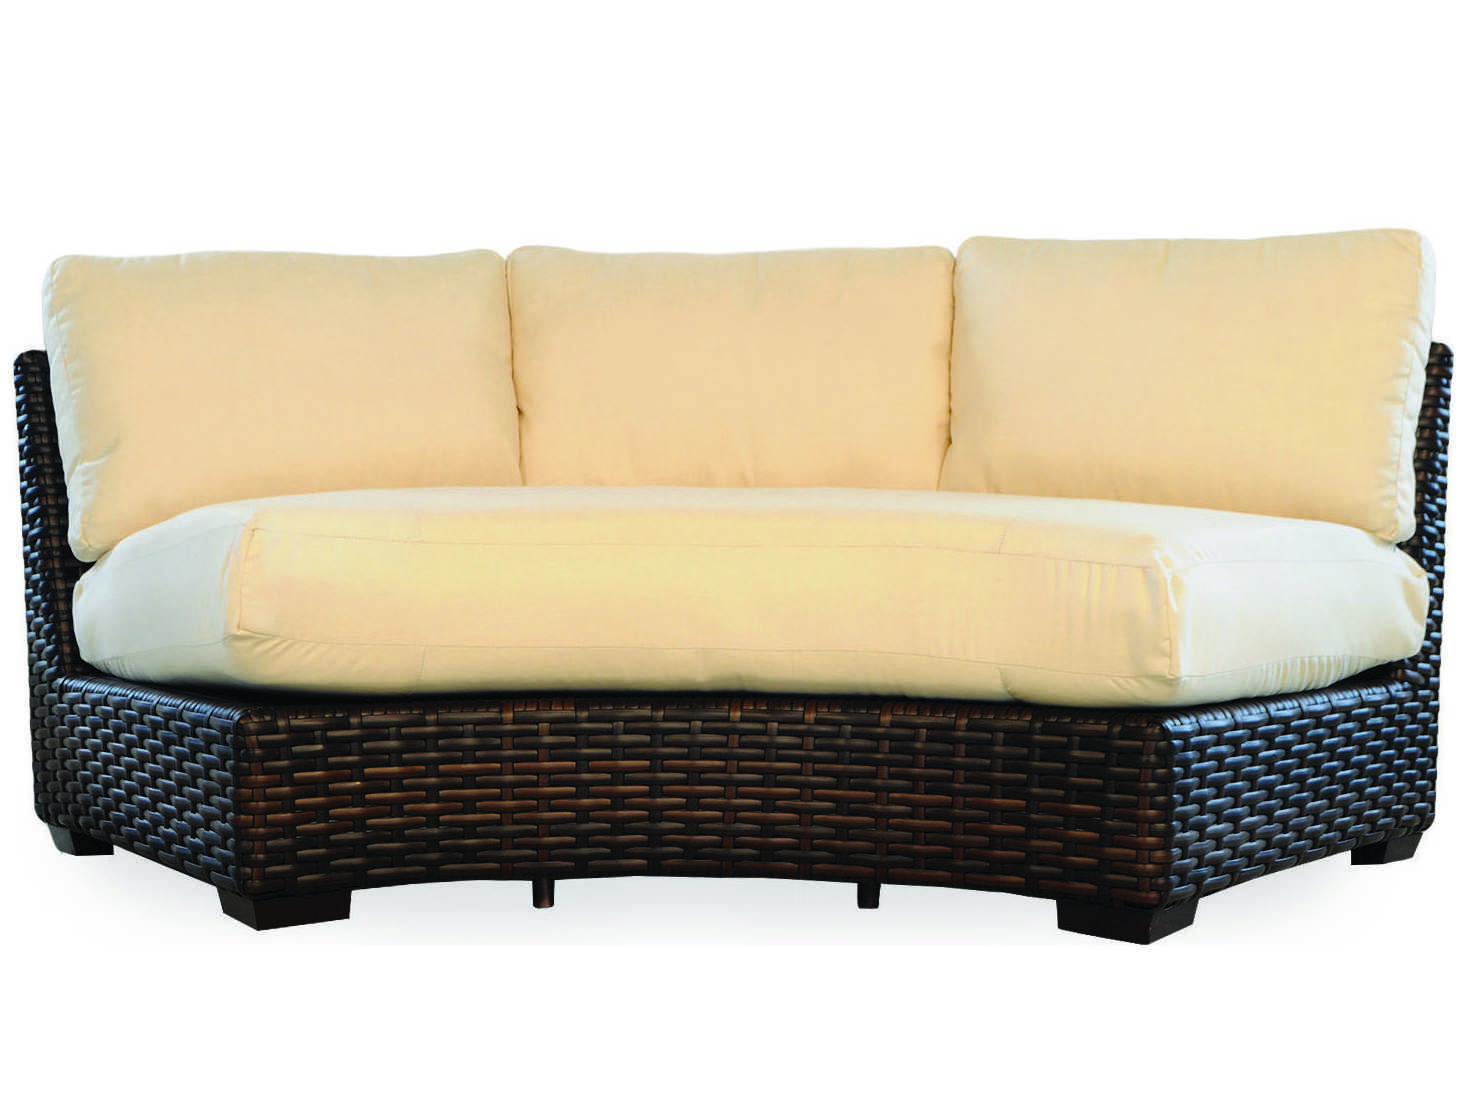 replacement cushions for sofa backs where to buy cheap sectional sofas lloyd flanders contempo curved